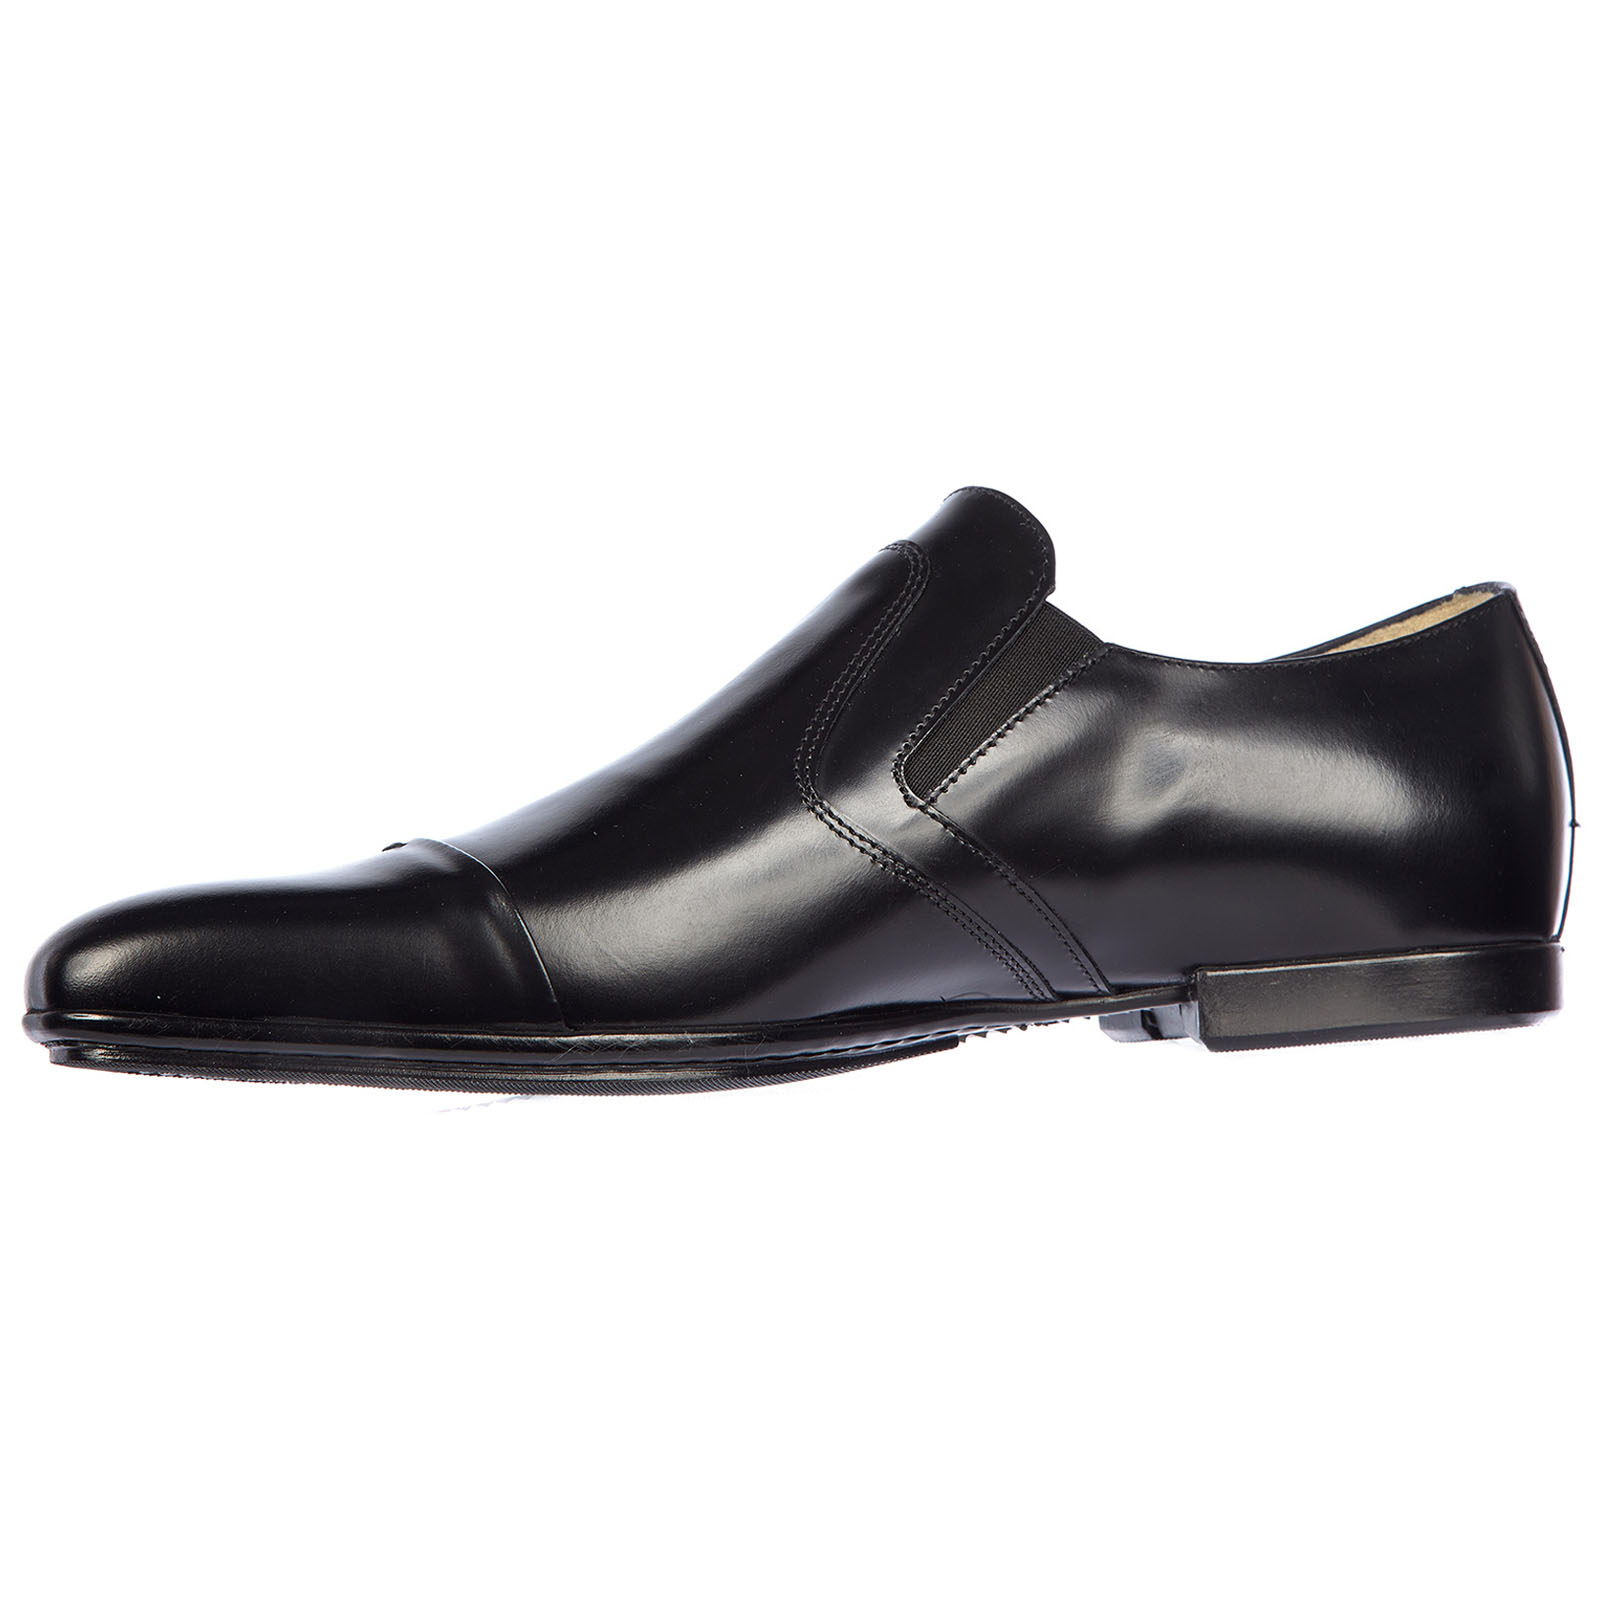 Men's classic leather formal shoes slip on monkstrap baio